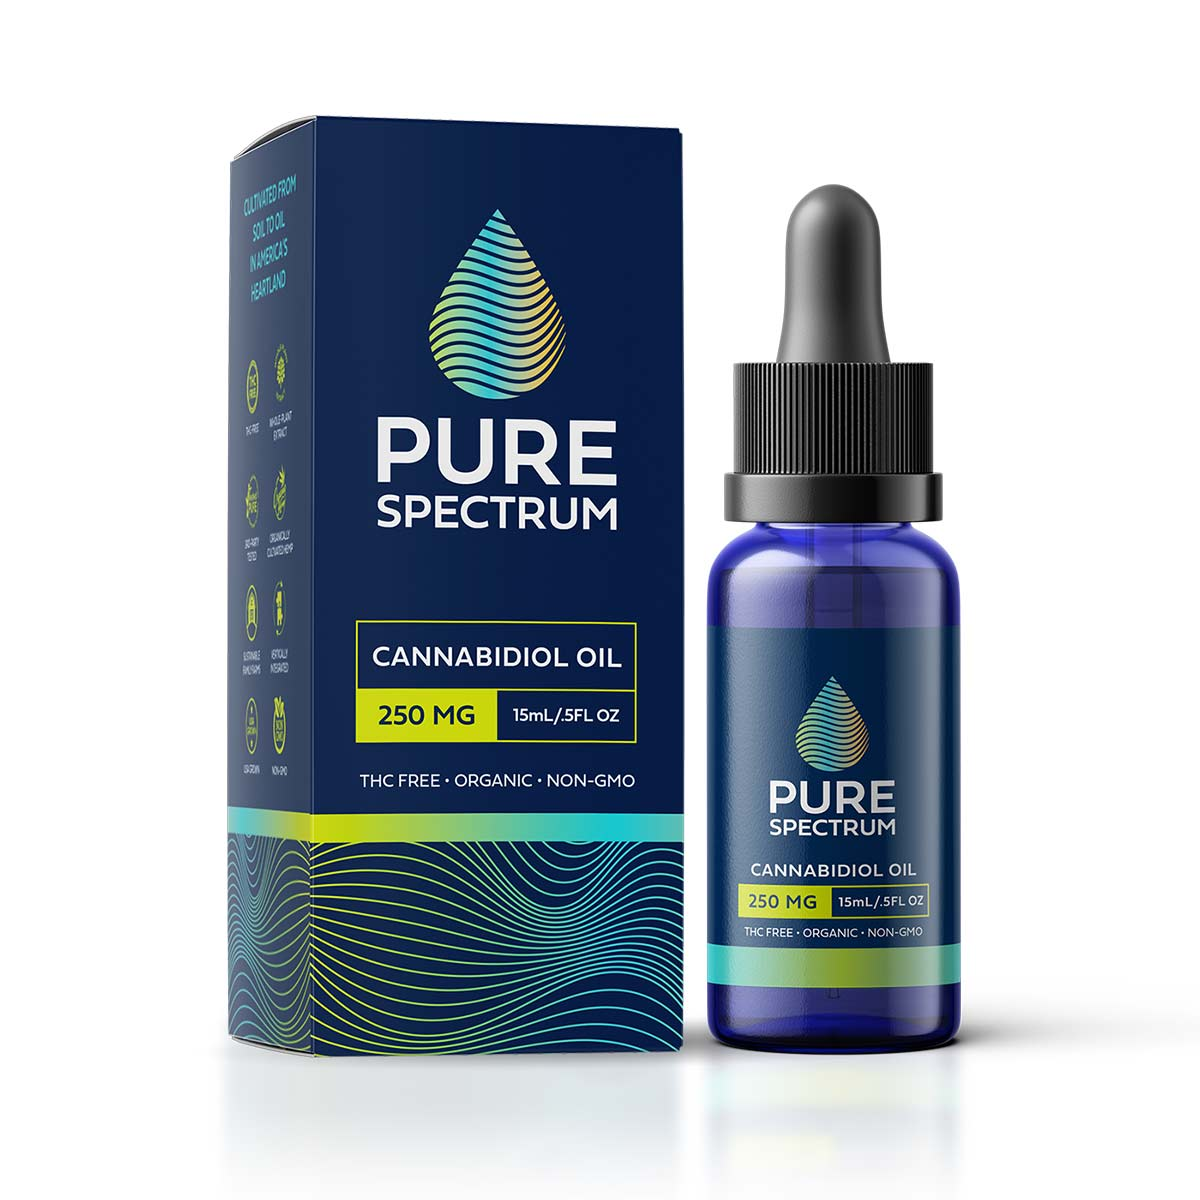 Pure Spectrum, CBD Oil Tincture, Cannabidiol Oil 15ml 250mg of CBD